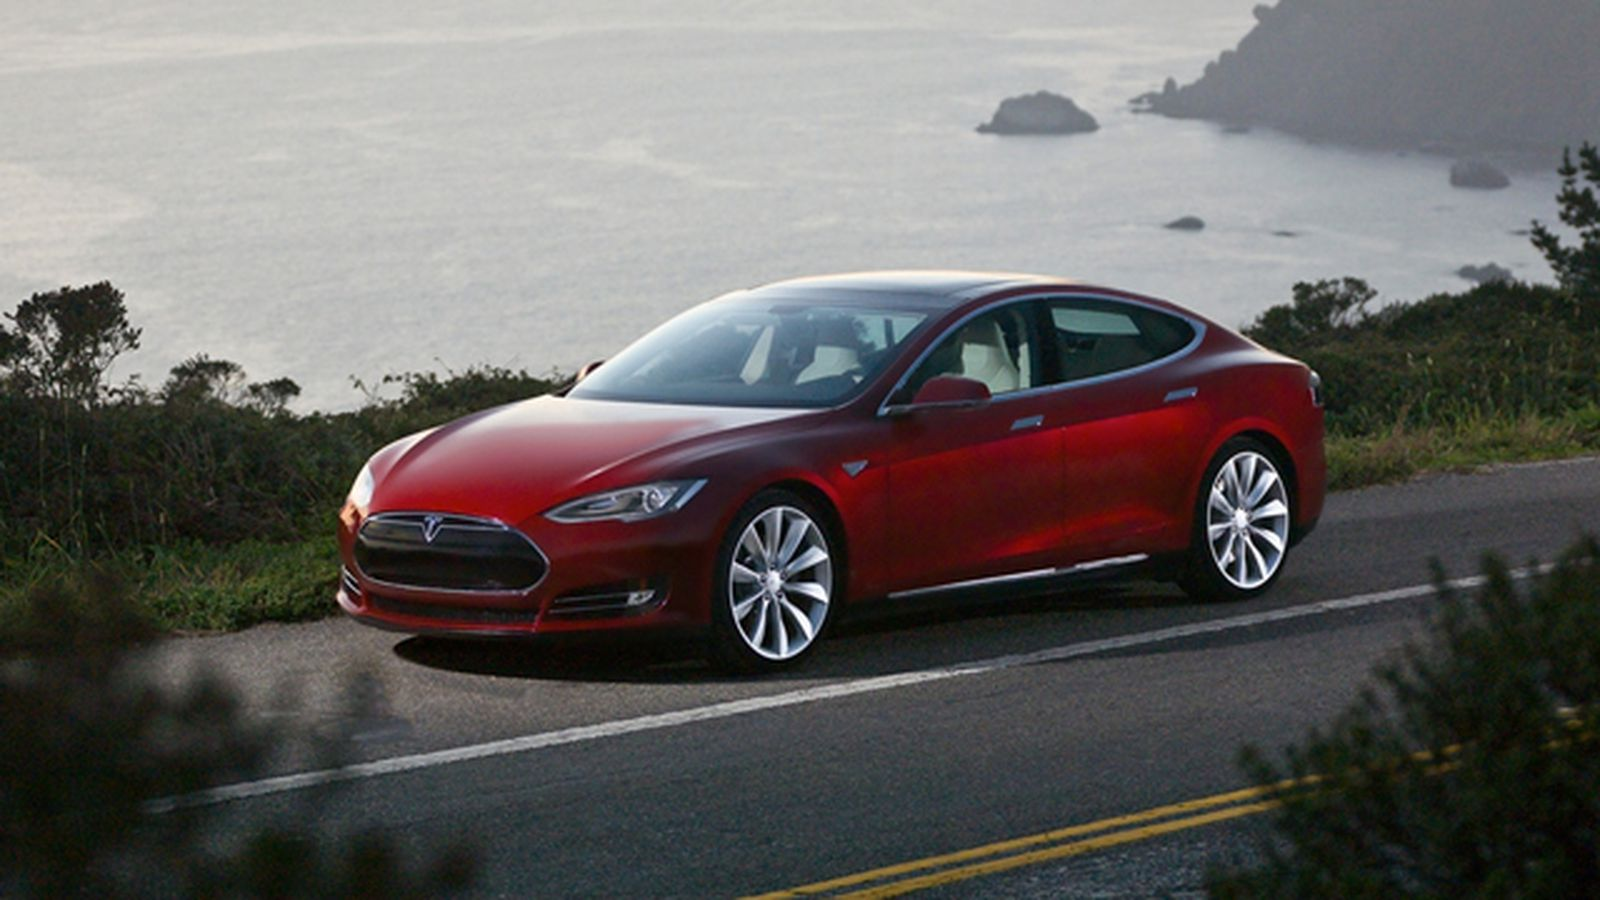 Tesla reactivated its automatic braking system after losing top Consumer Reports score